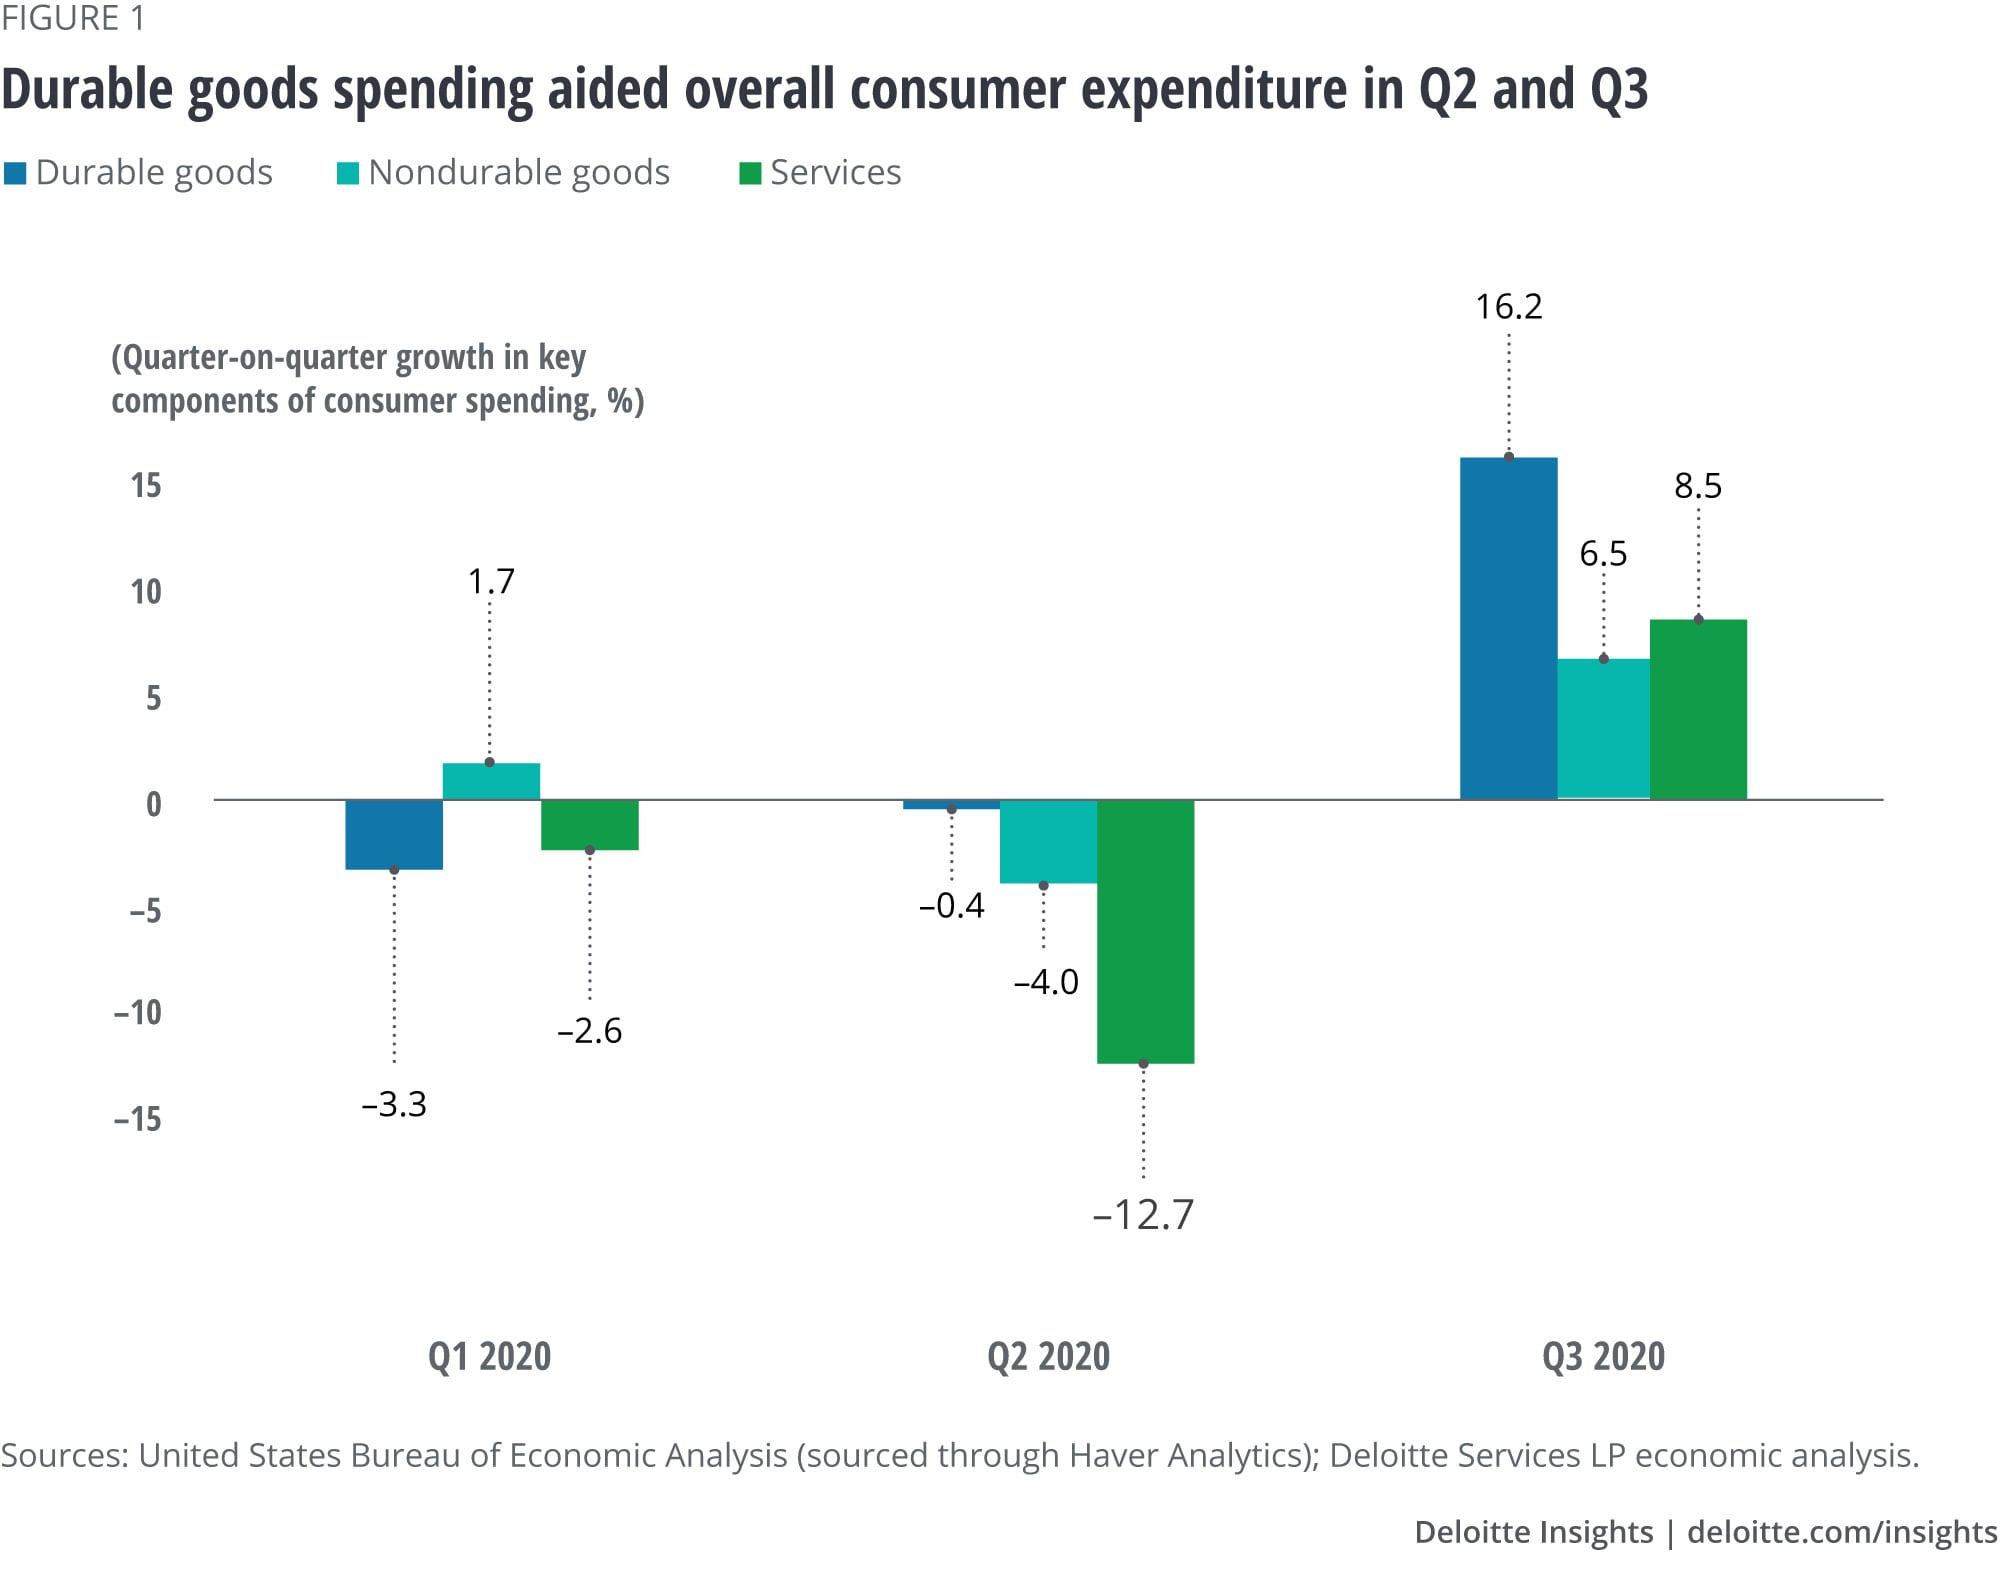 Durable goods spending aided overall consumer expenditure in Q2 and Q3